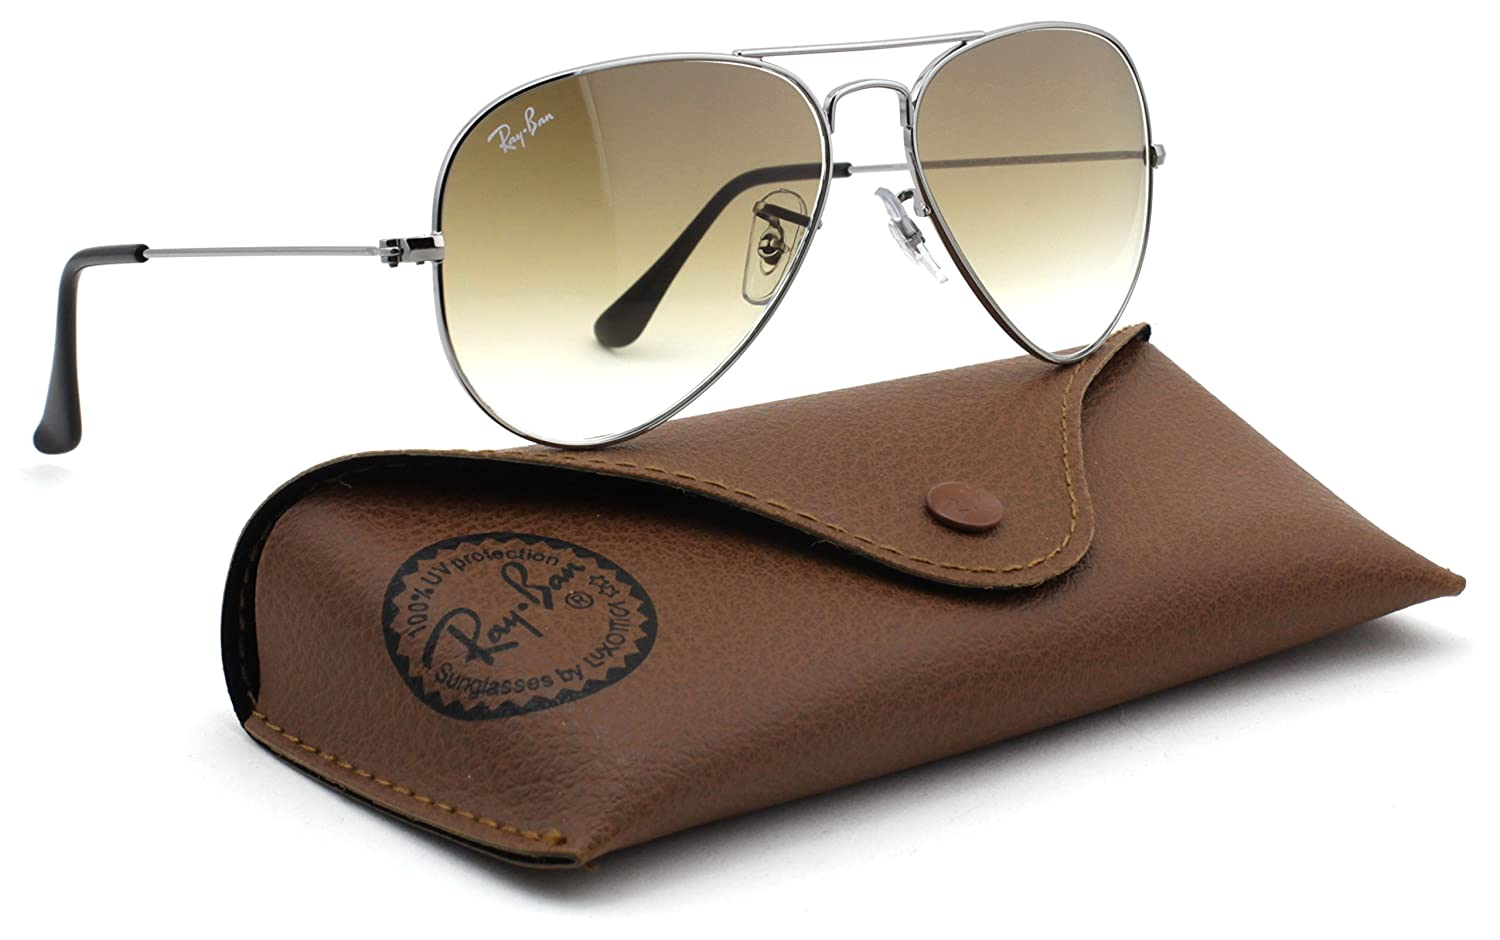 c4a3b53b3c Ray Ban 3025 Aviator RB3025 004 51 58mm gunmetal Frame with Brown Faded  Medium  Amazon.co.uk  Books